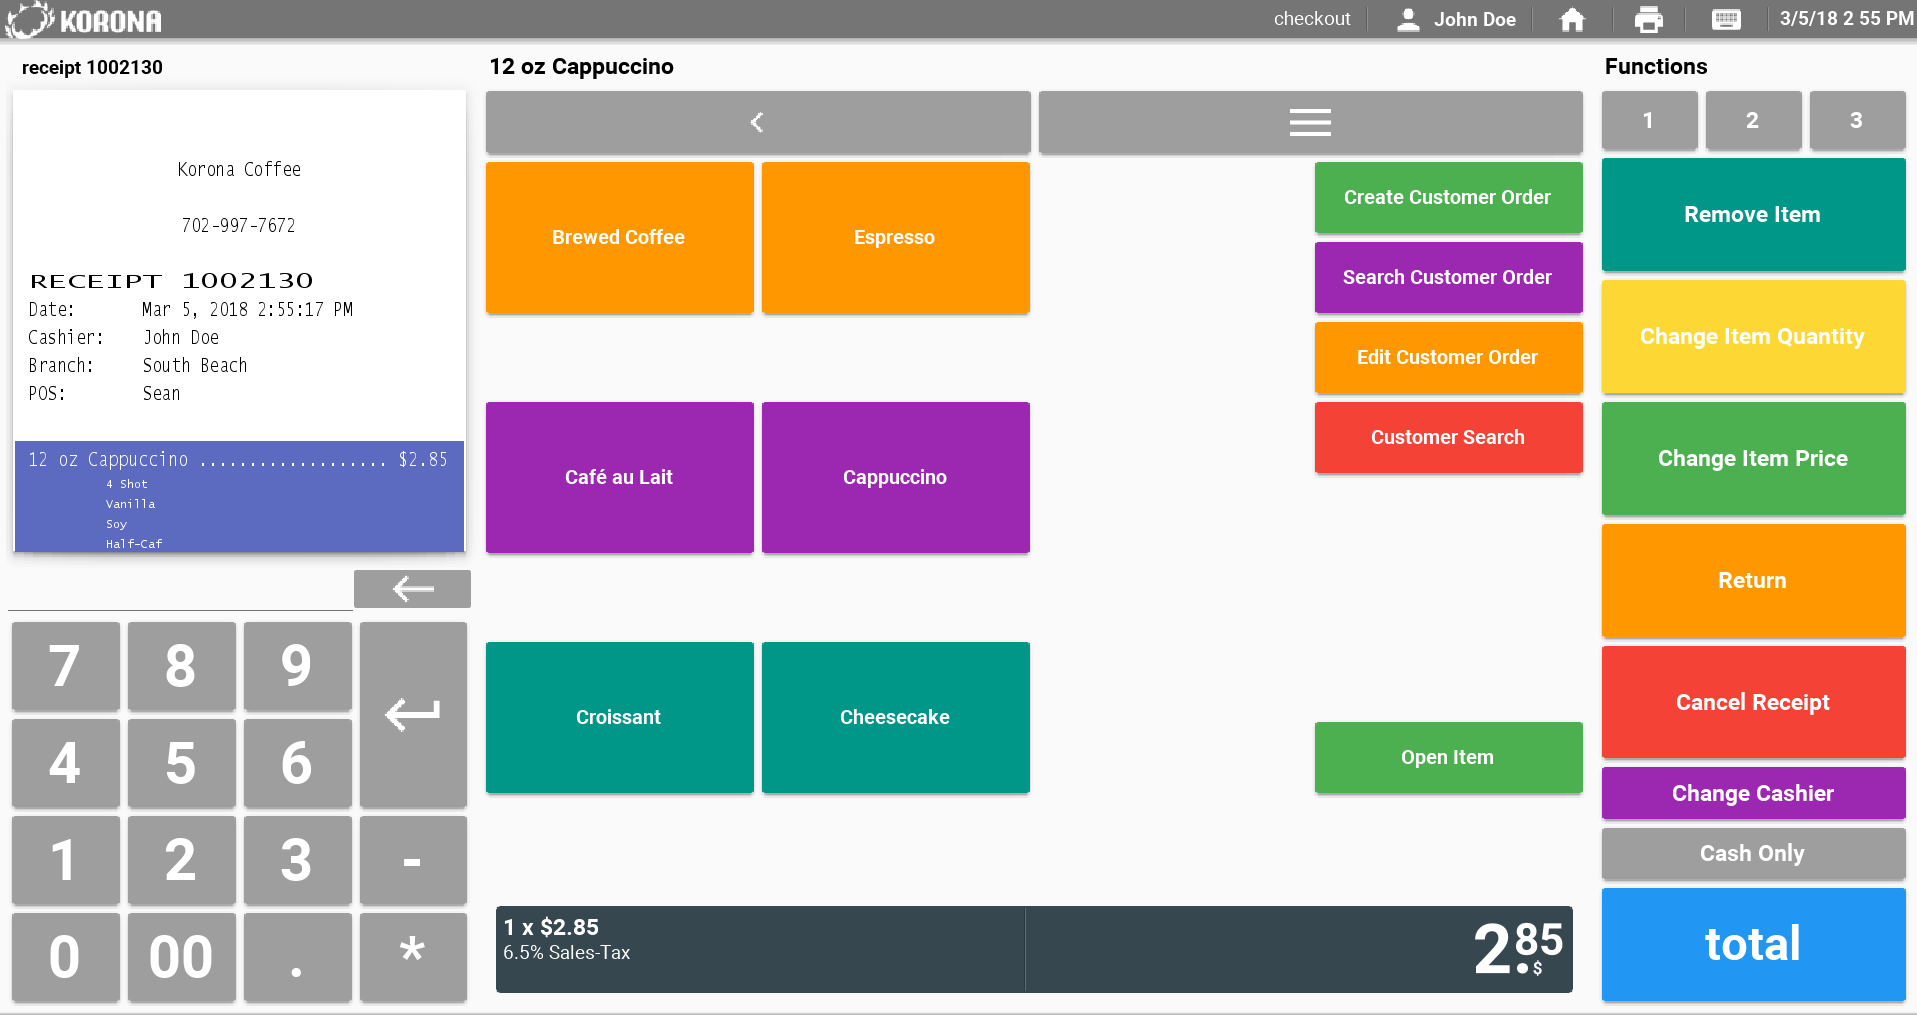 The employee user experience is easy to learn and features an intuitive POS interface. All buttons, menus, and layout are easily customizable.